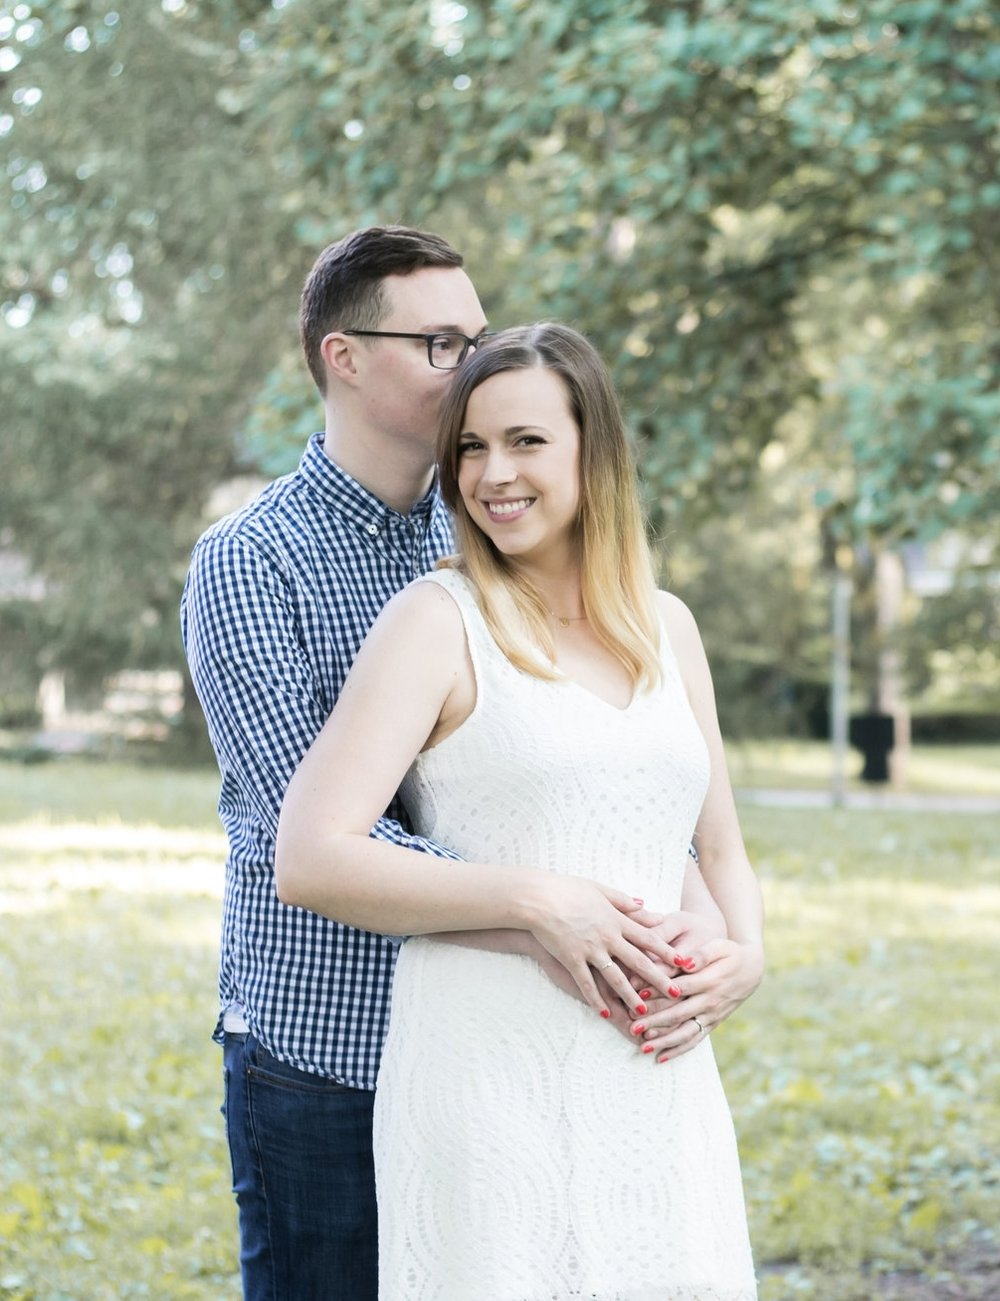 Lauraengagement-106.jpg